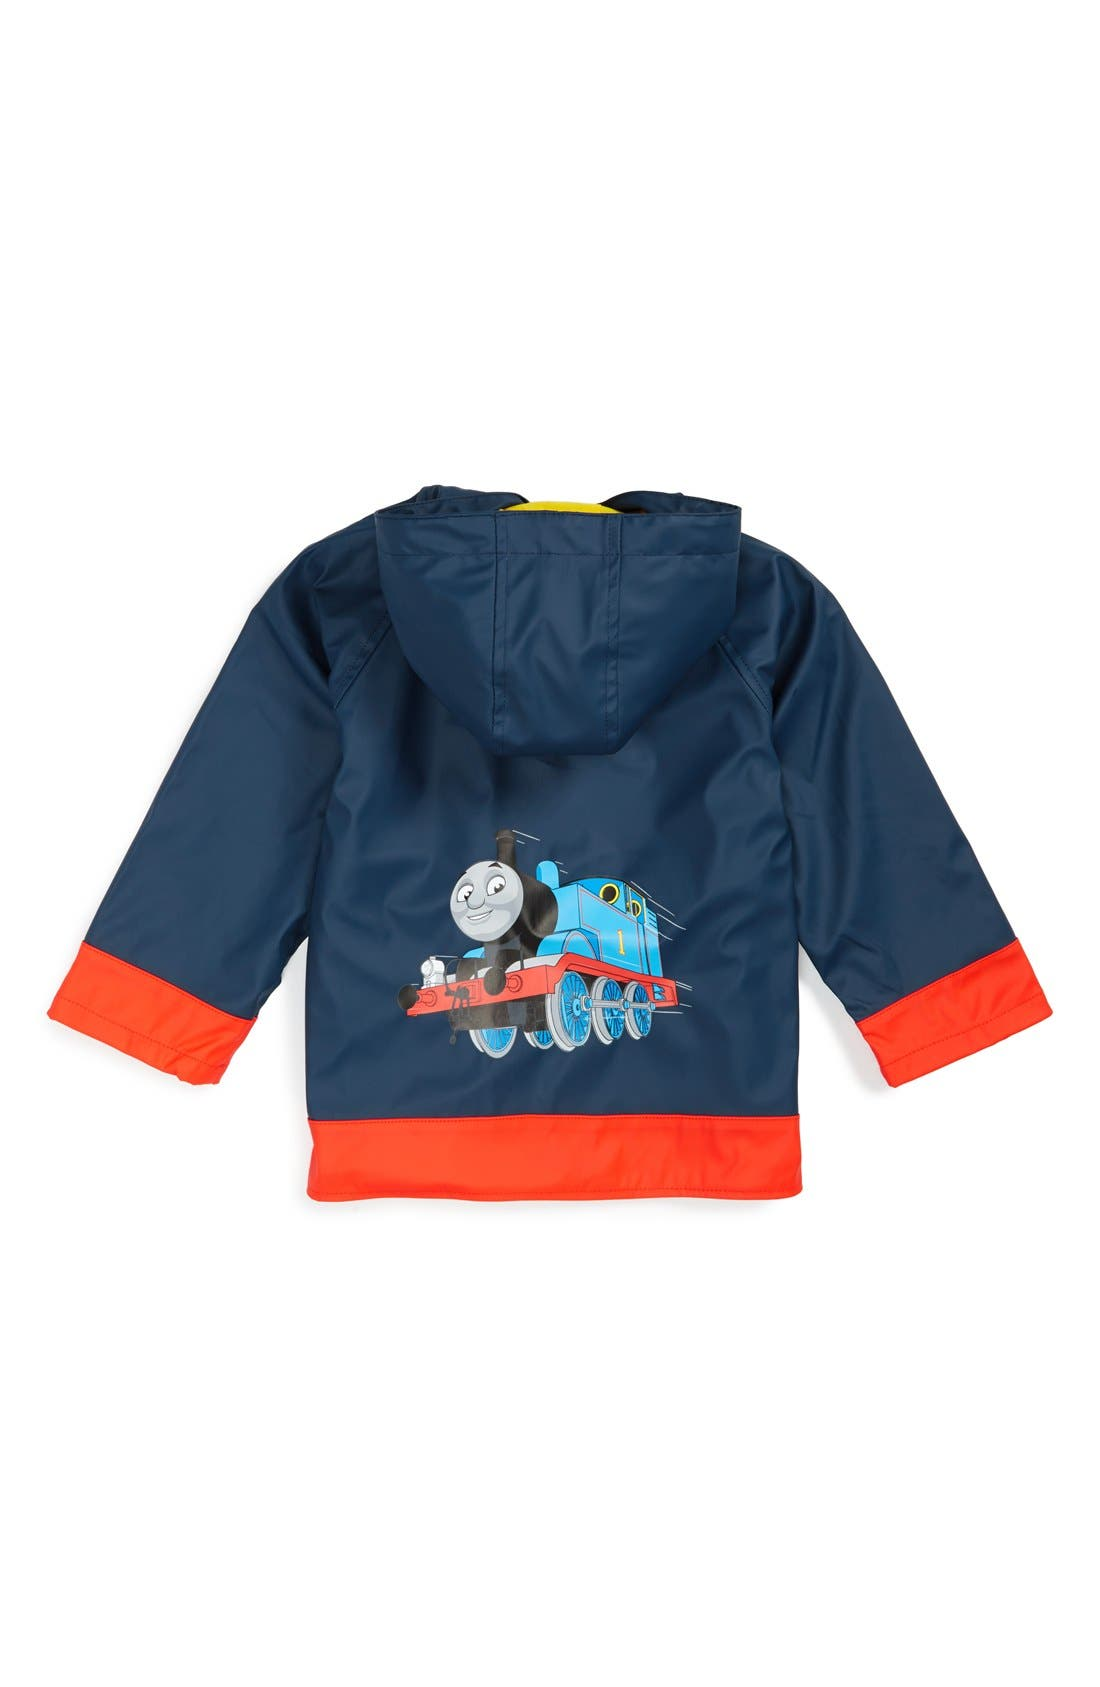 'Thomas the Tank Engine' Raincoat,                             Alternate thumbnail 3, color,                             421